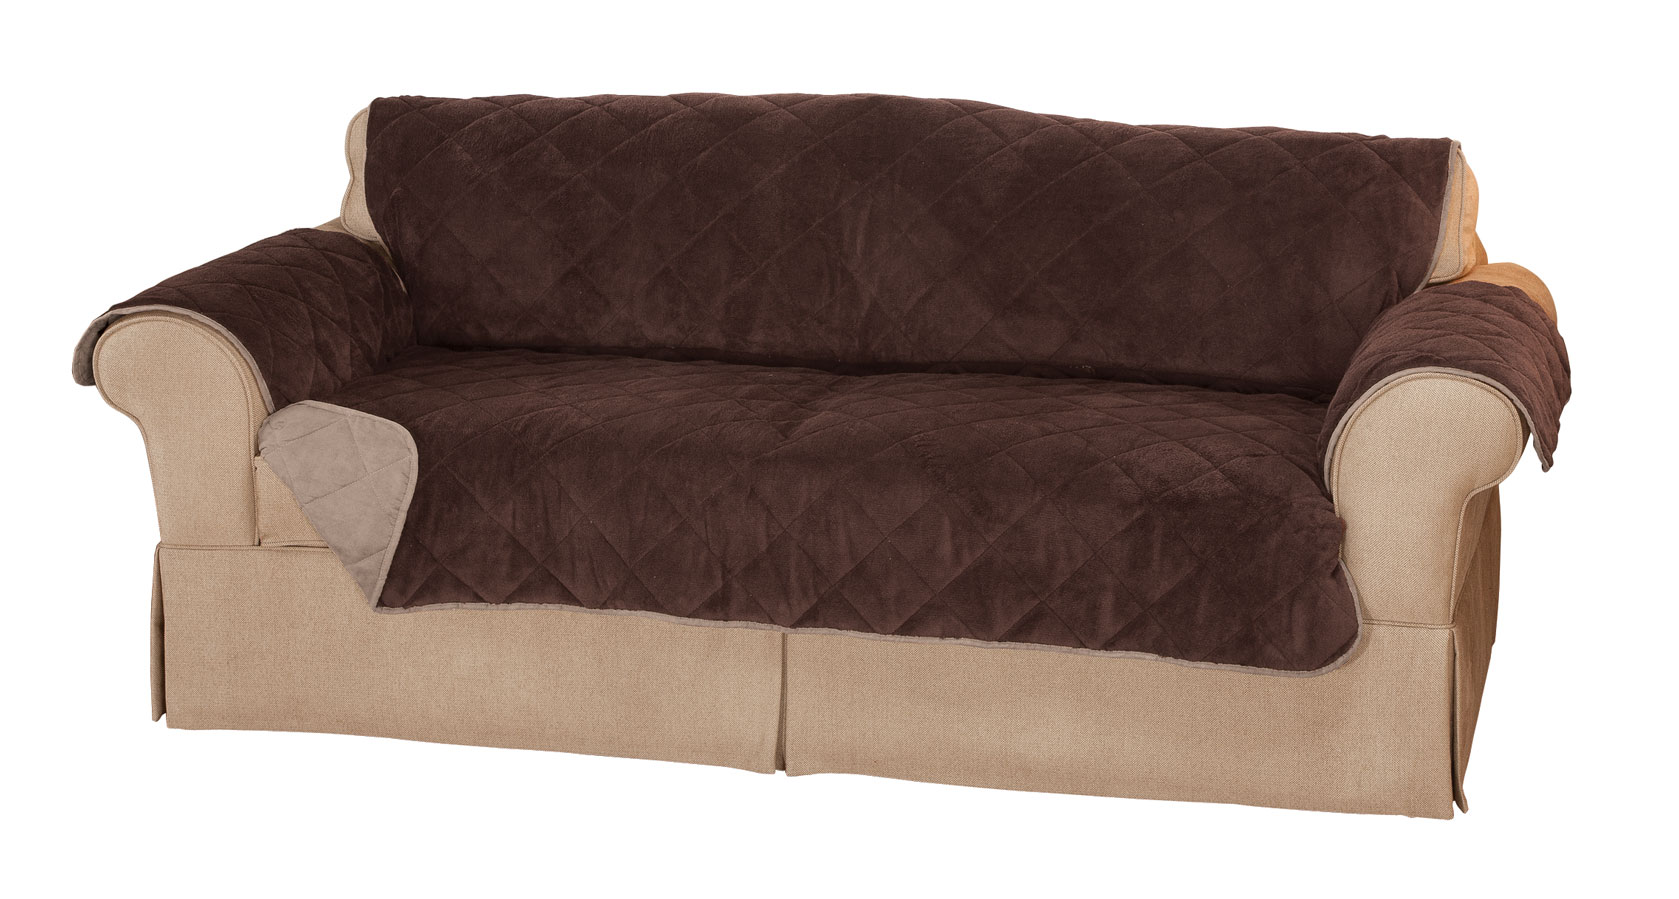 waterproof sofa protector costco bed plush to suede xl by oakridge